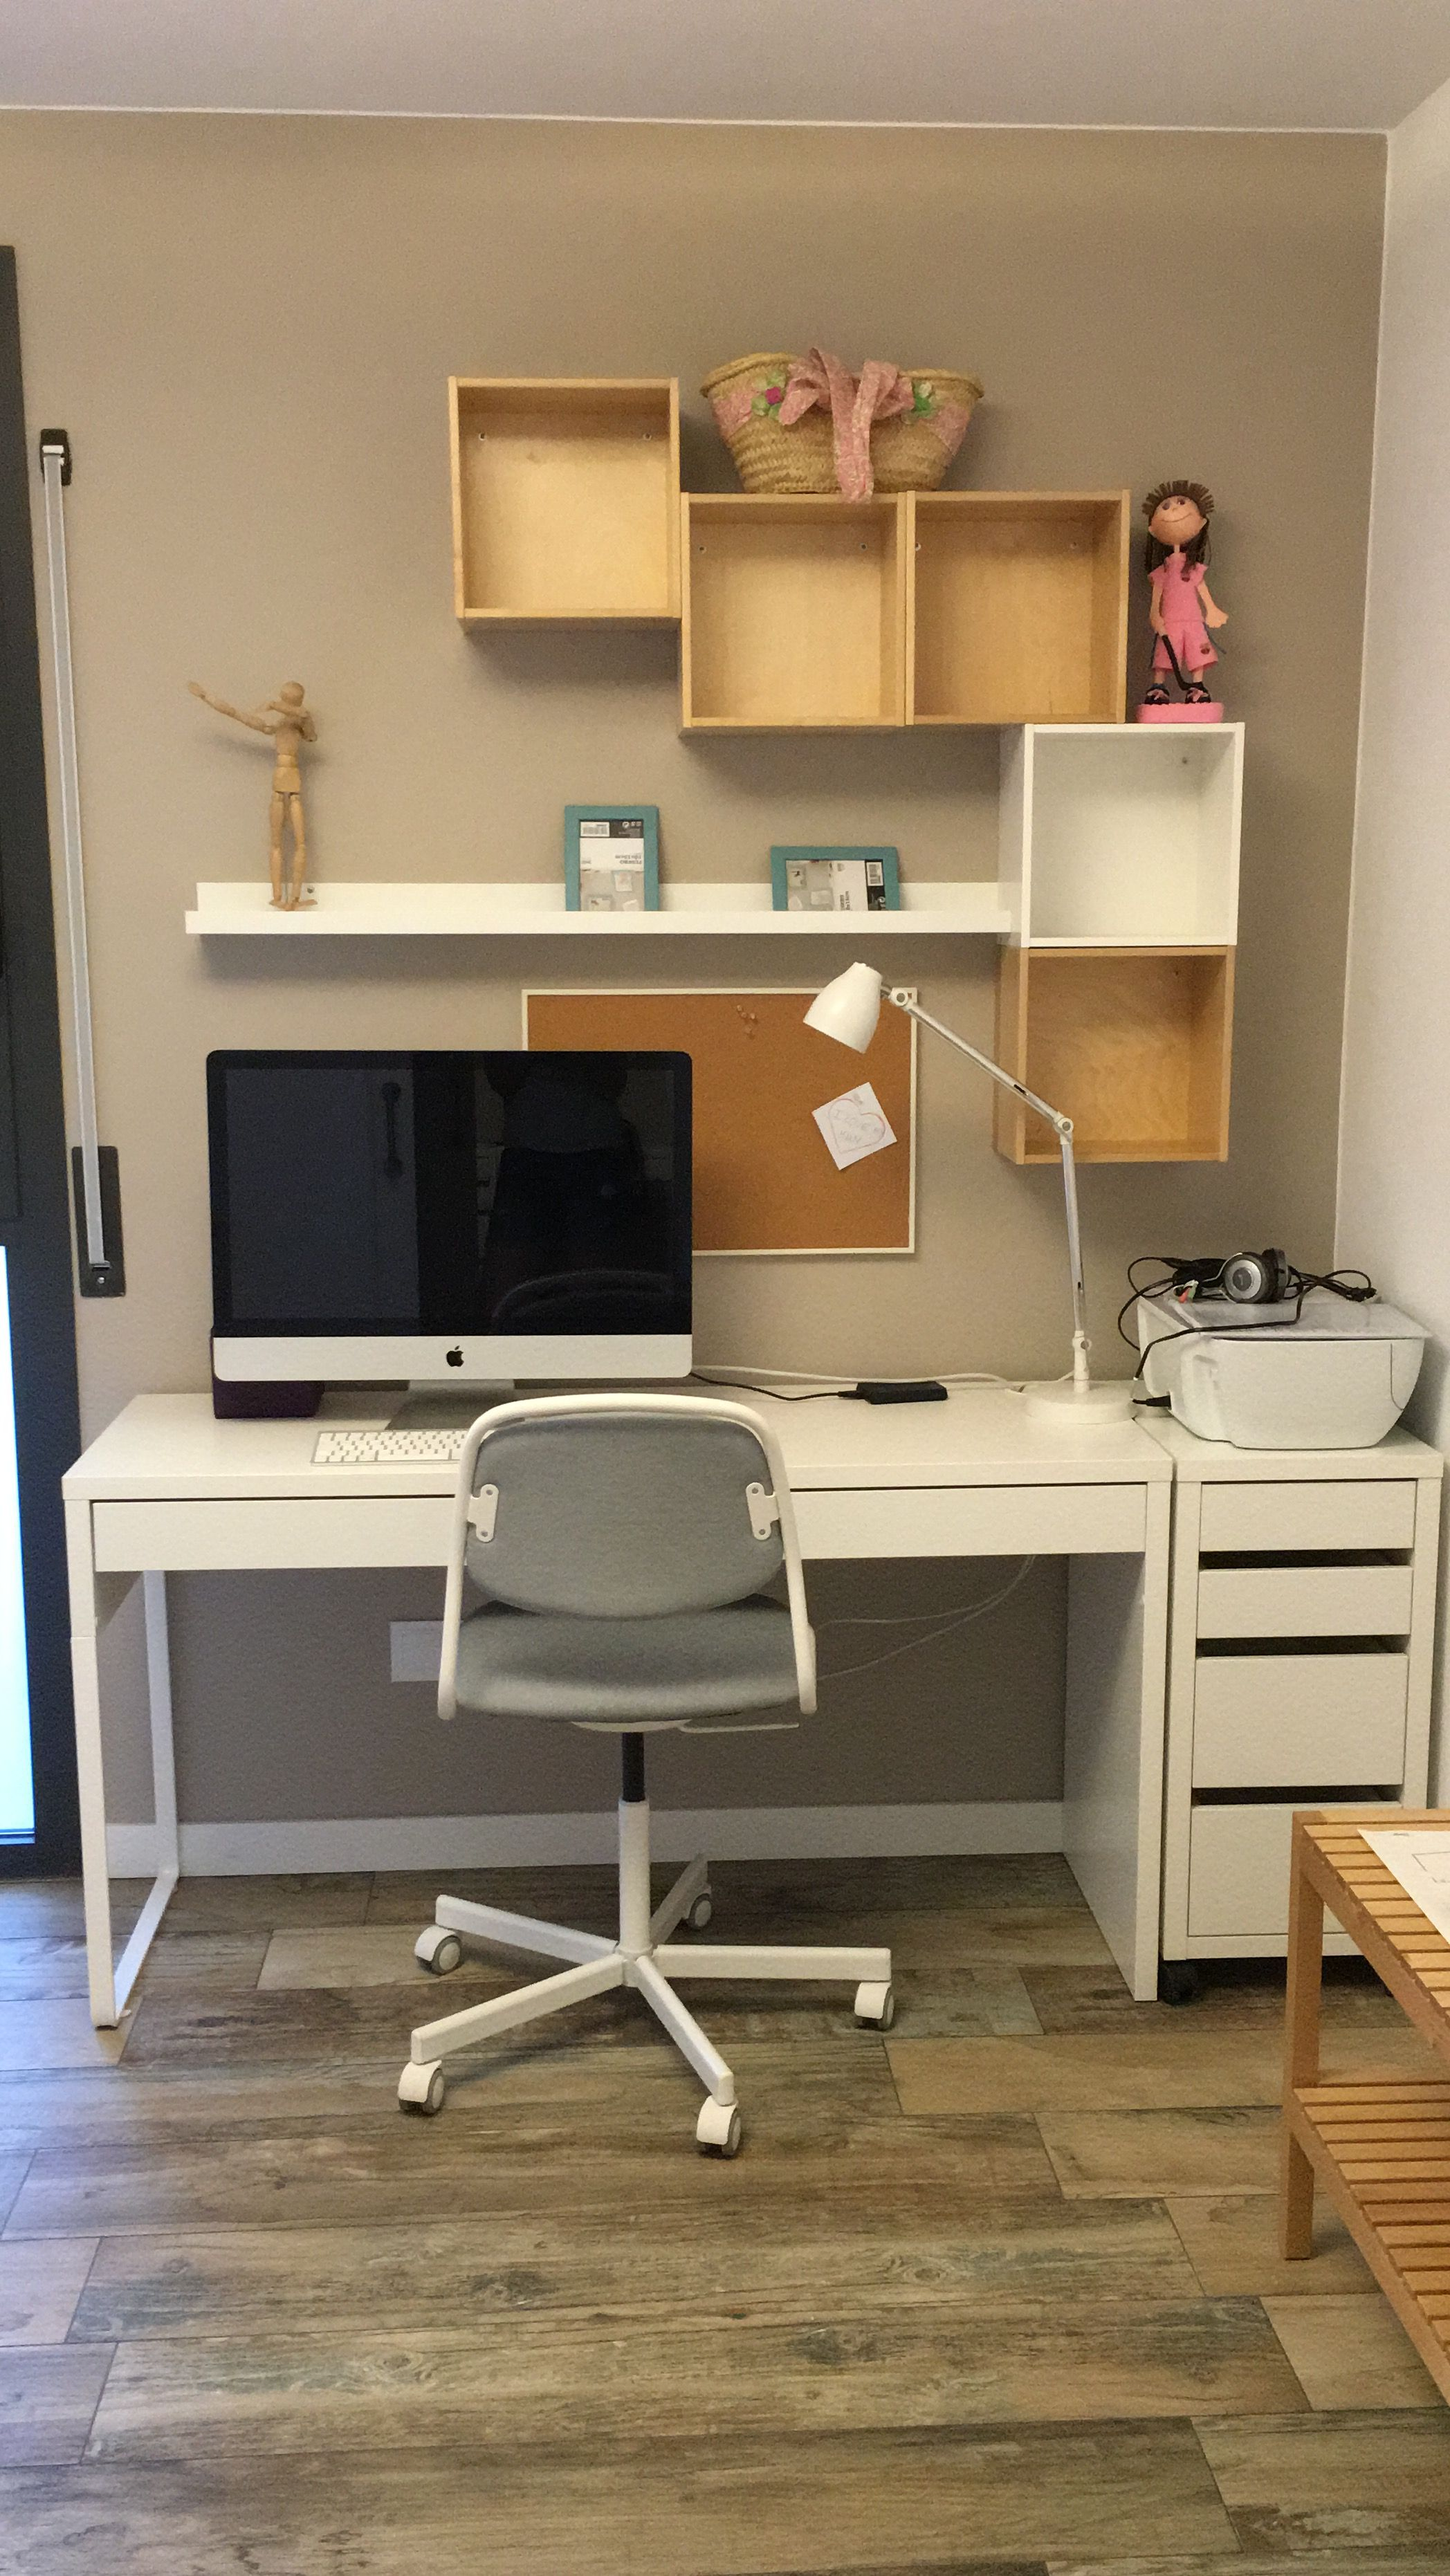 DIY puter Desk Ideas Space Saving Awesome Picture